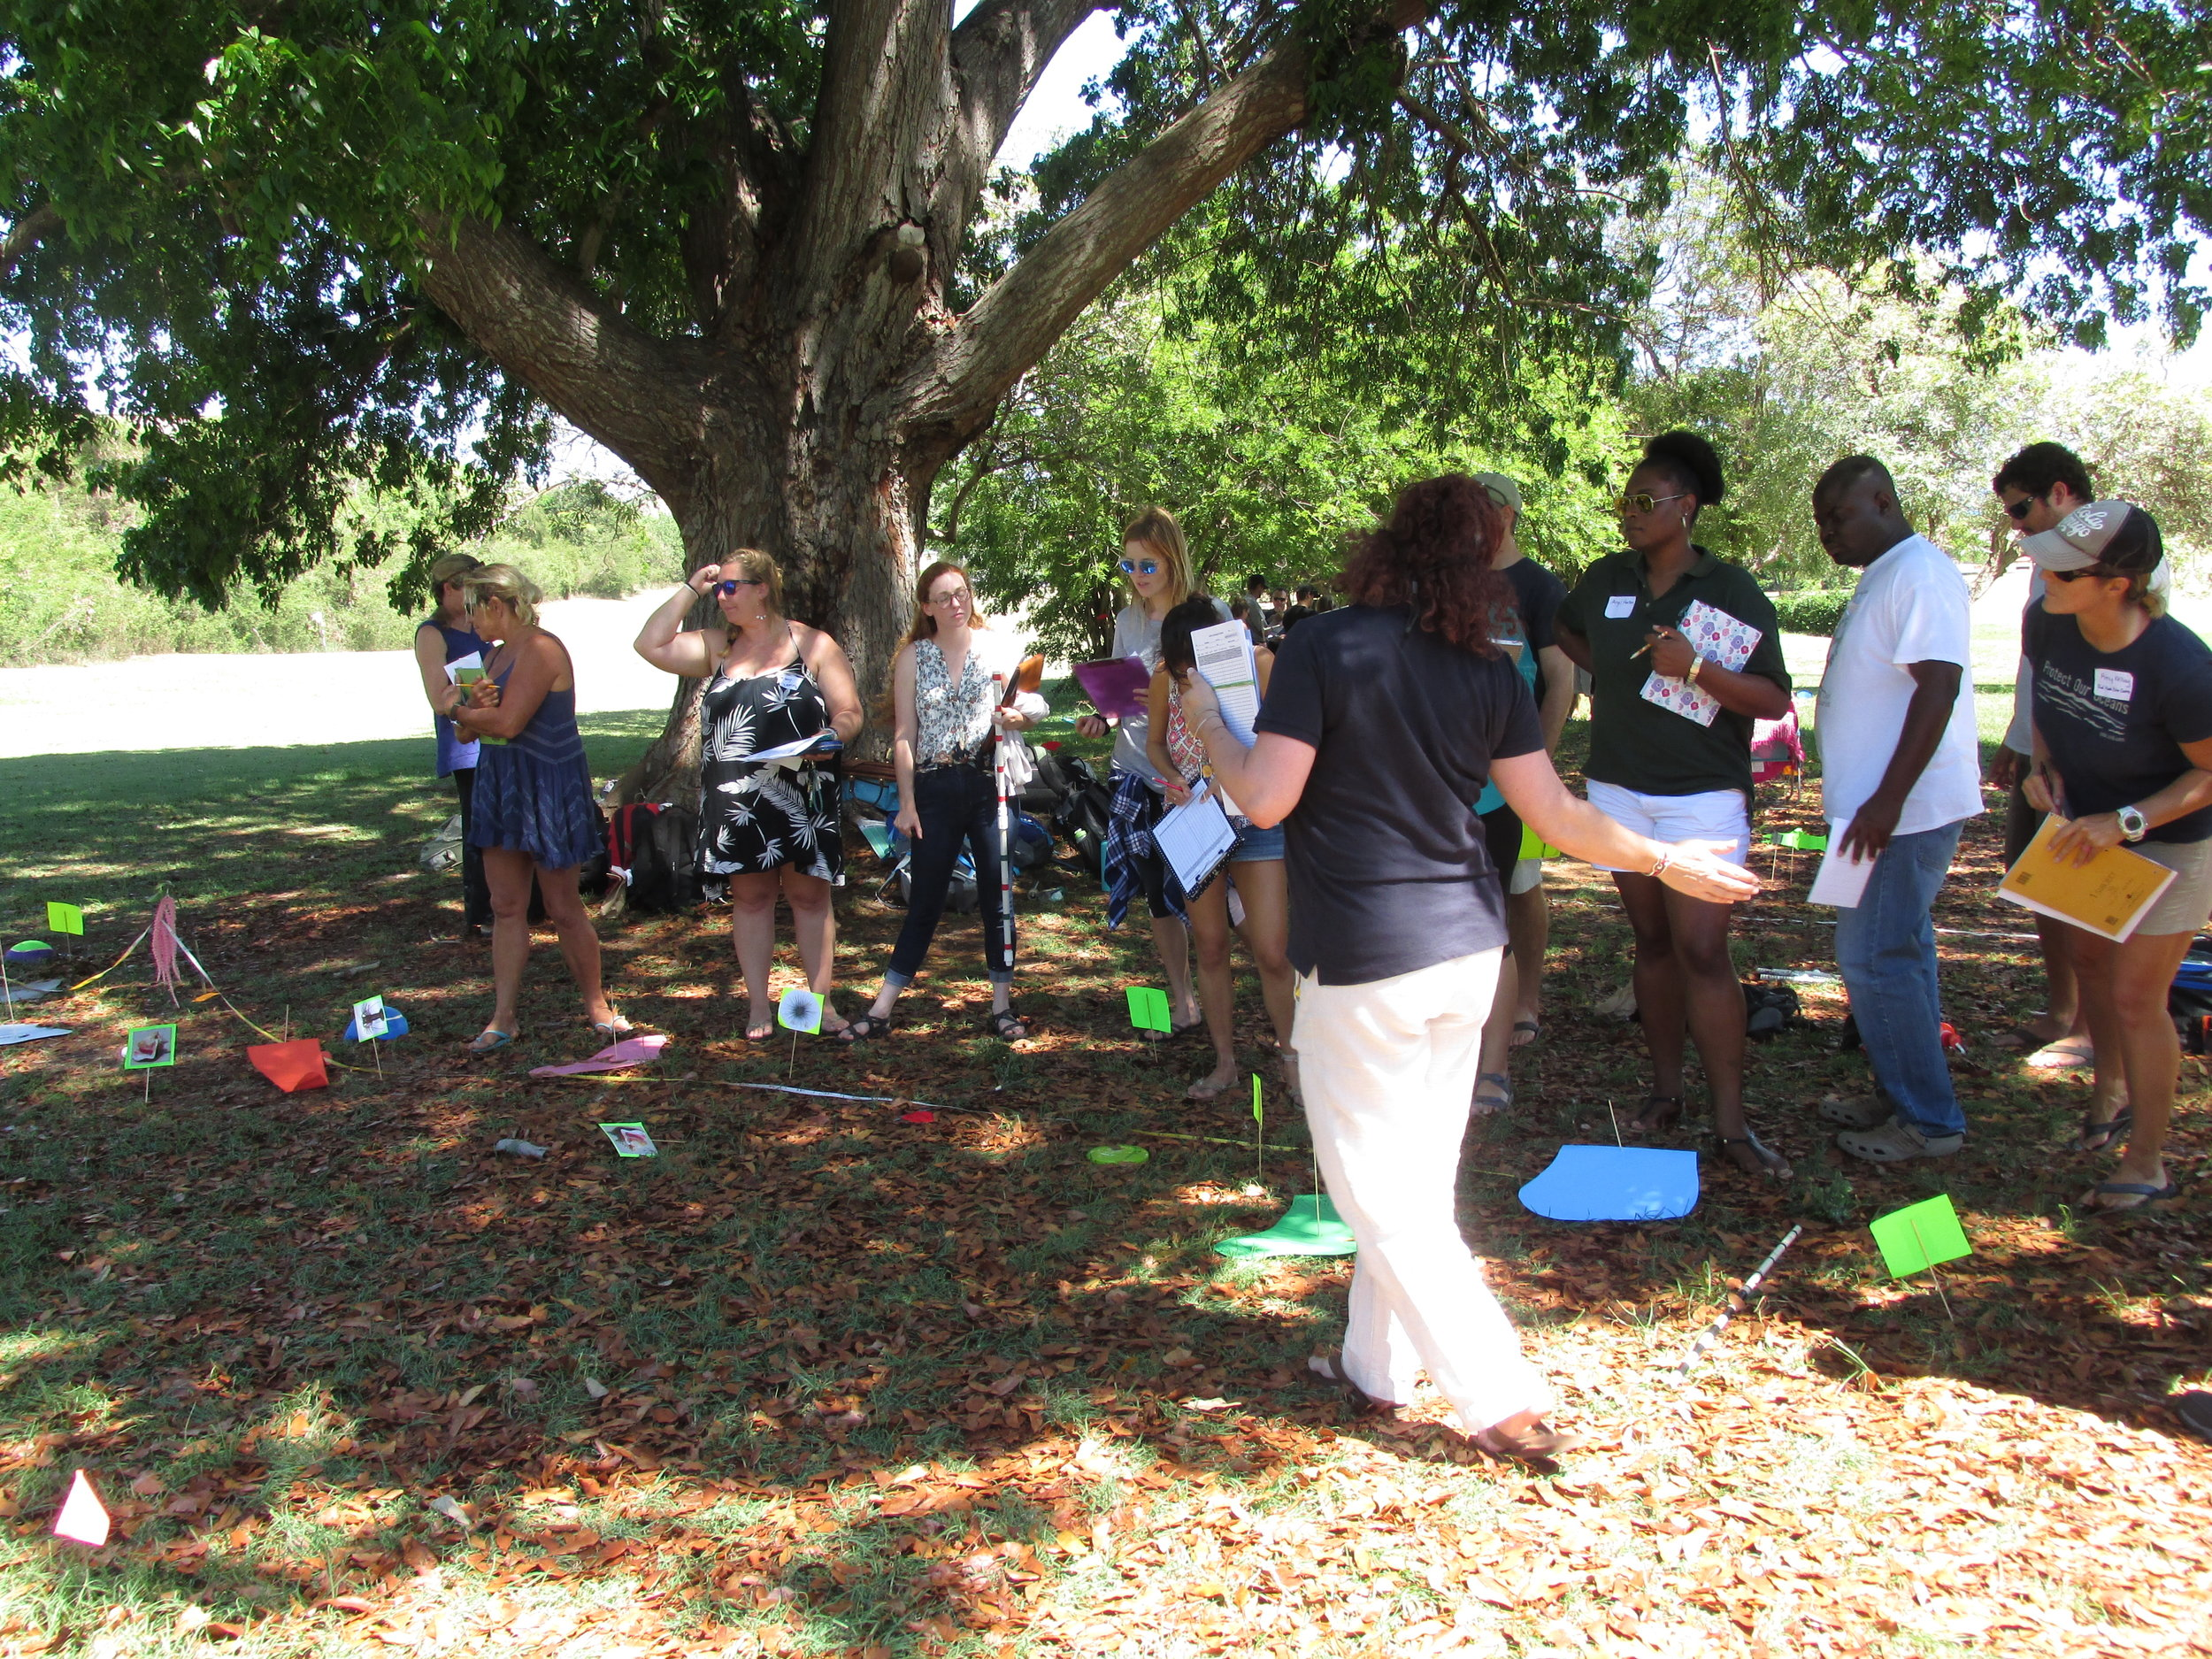 To participate in the NCRMP surveys, UVI staff and students participated in rigorous training in the fish and coral assessment protocols. Dr. Brandt has contributed to the development of the protocols and has helped lead NCRMP efforts in the territory since 2012.